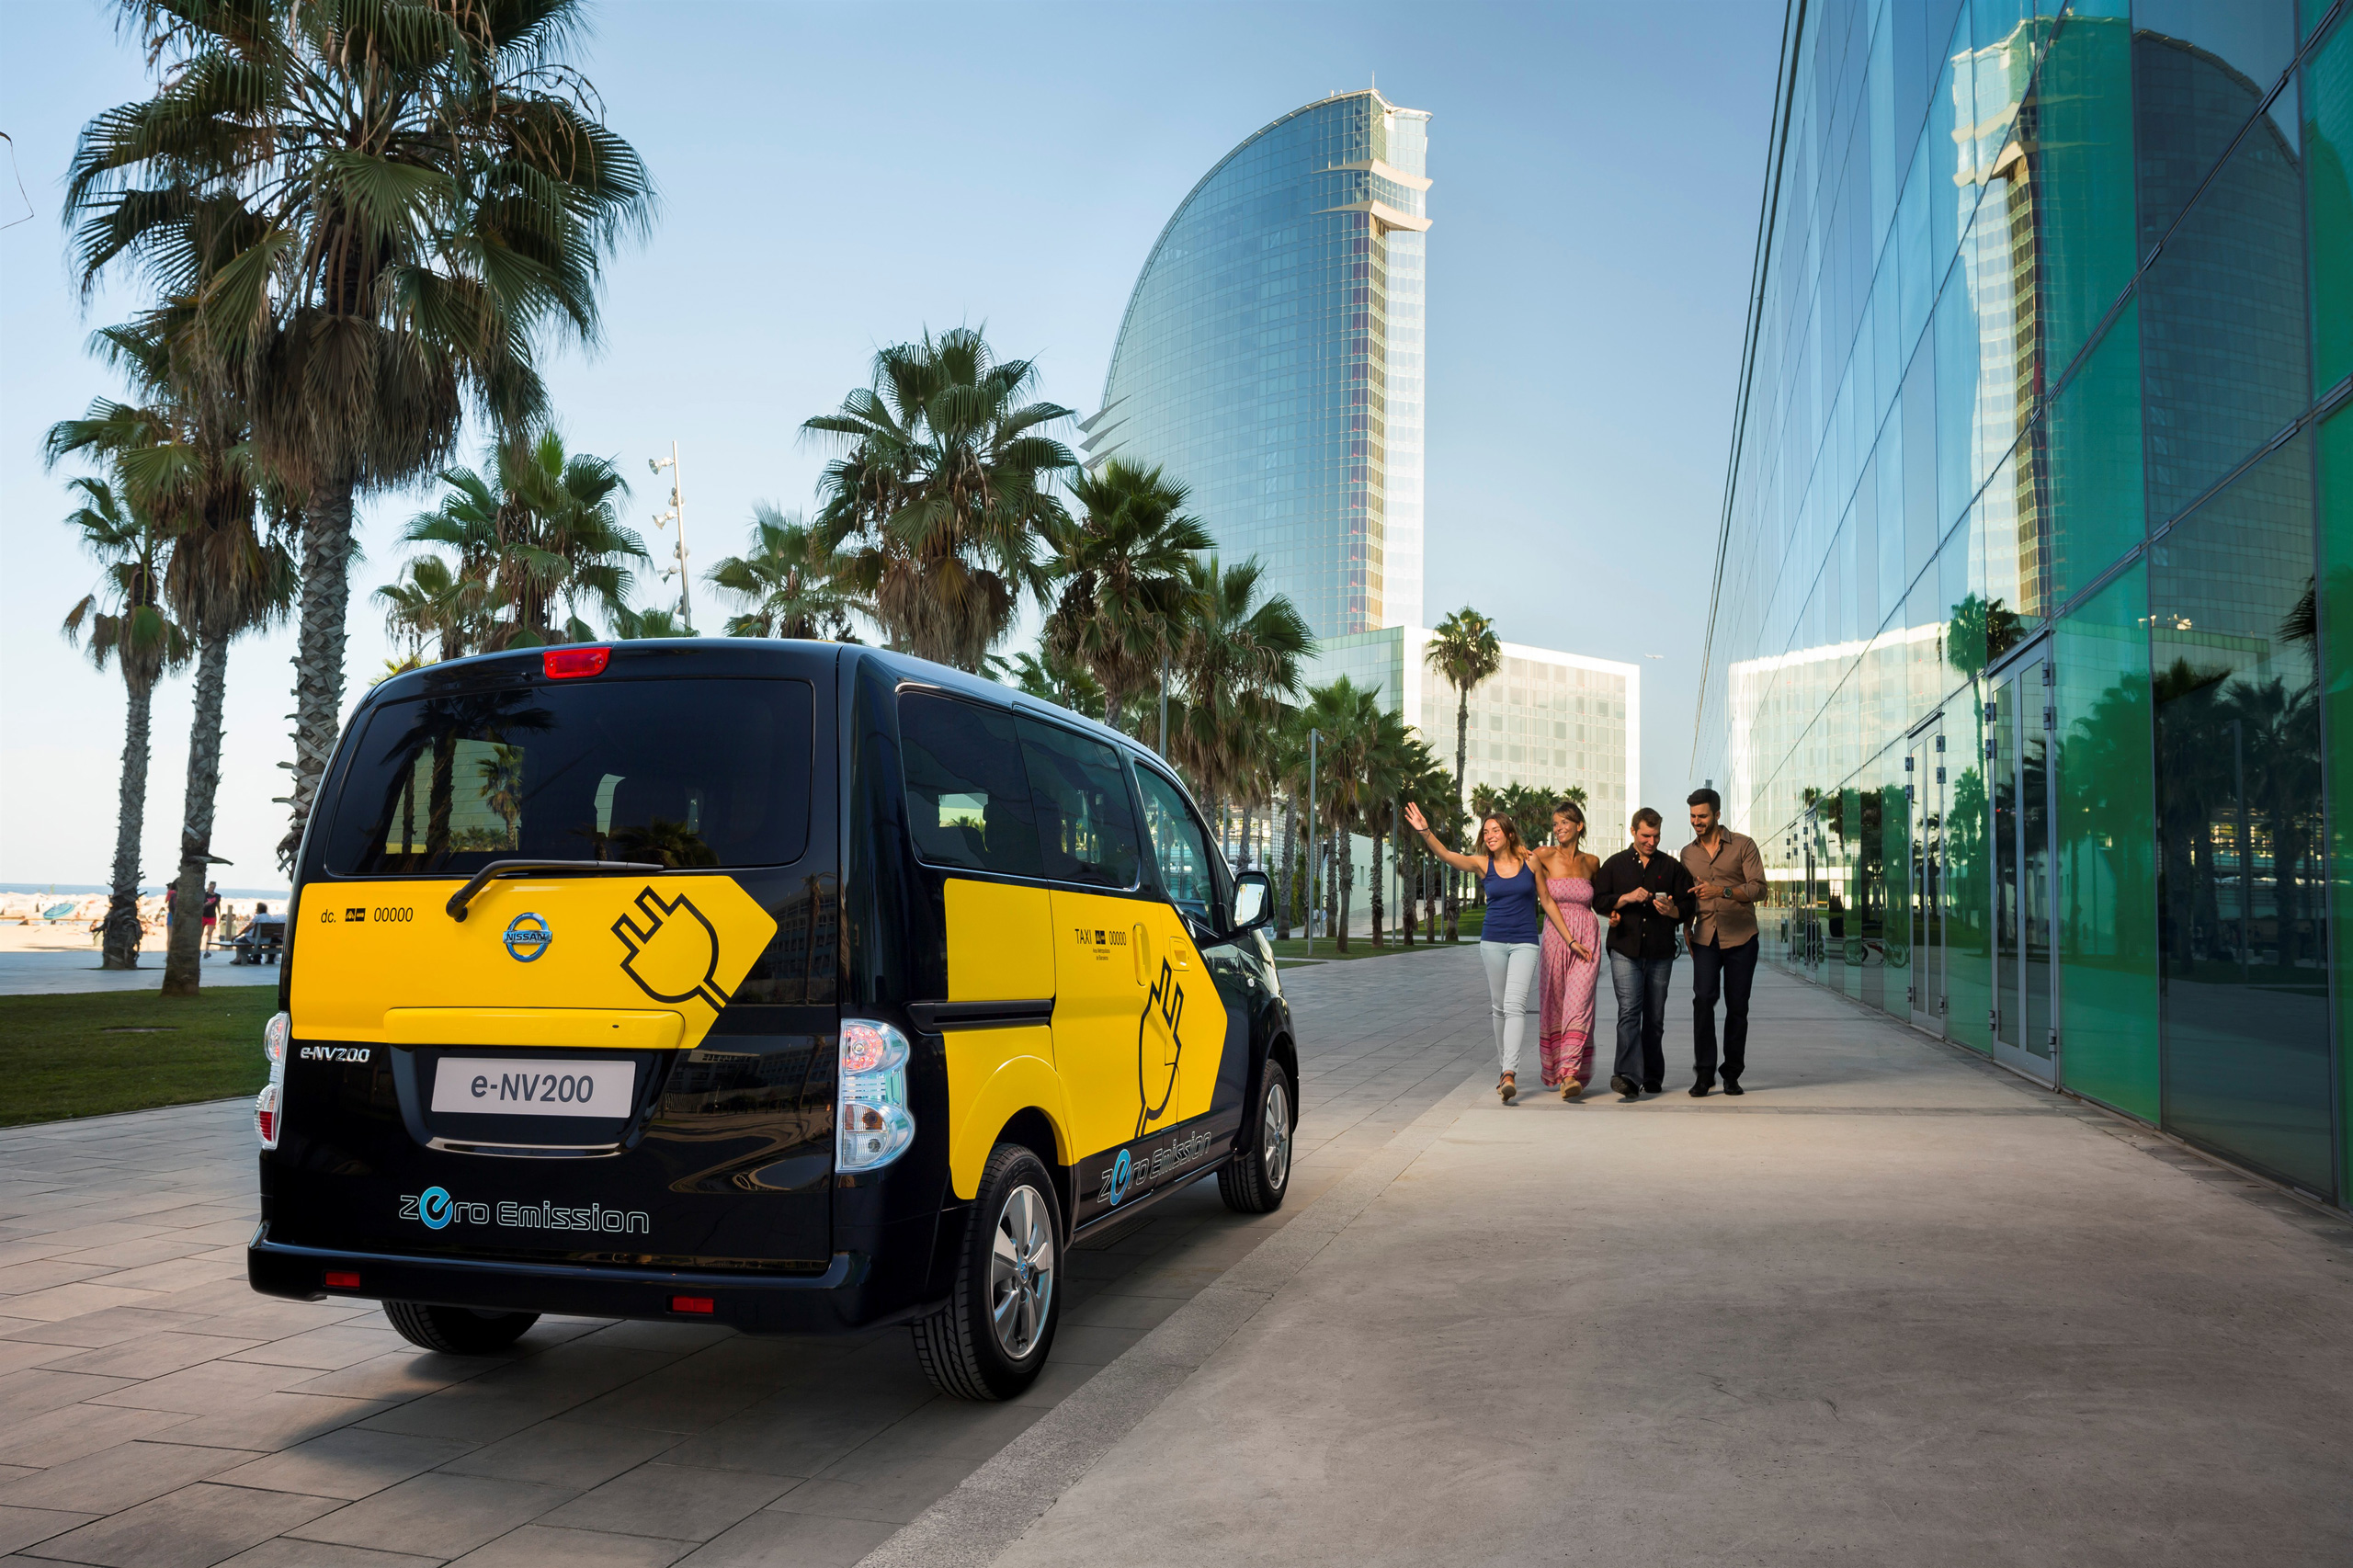 Barcelona to use nissan e nv200 electric taxi cabs image 198205 - Cab in barcelona ...